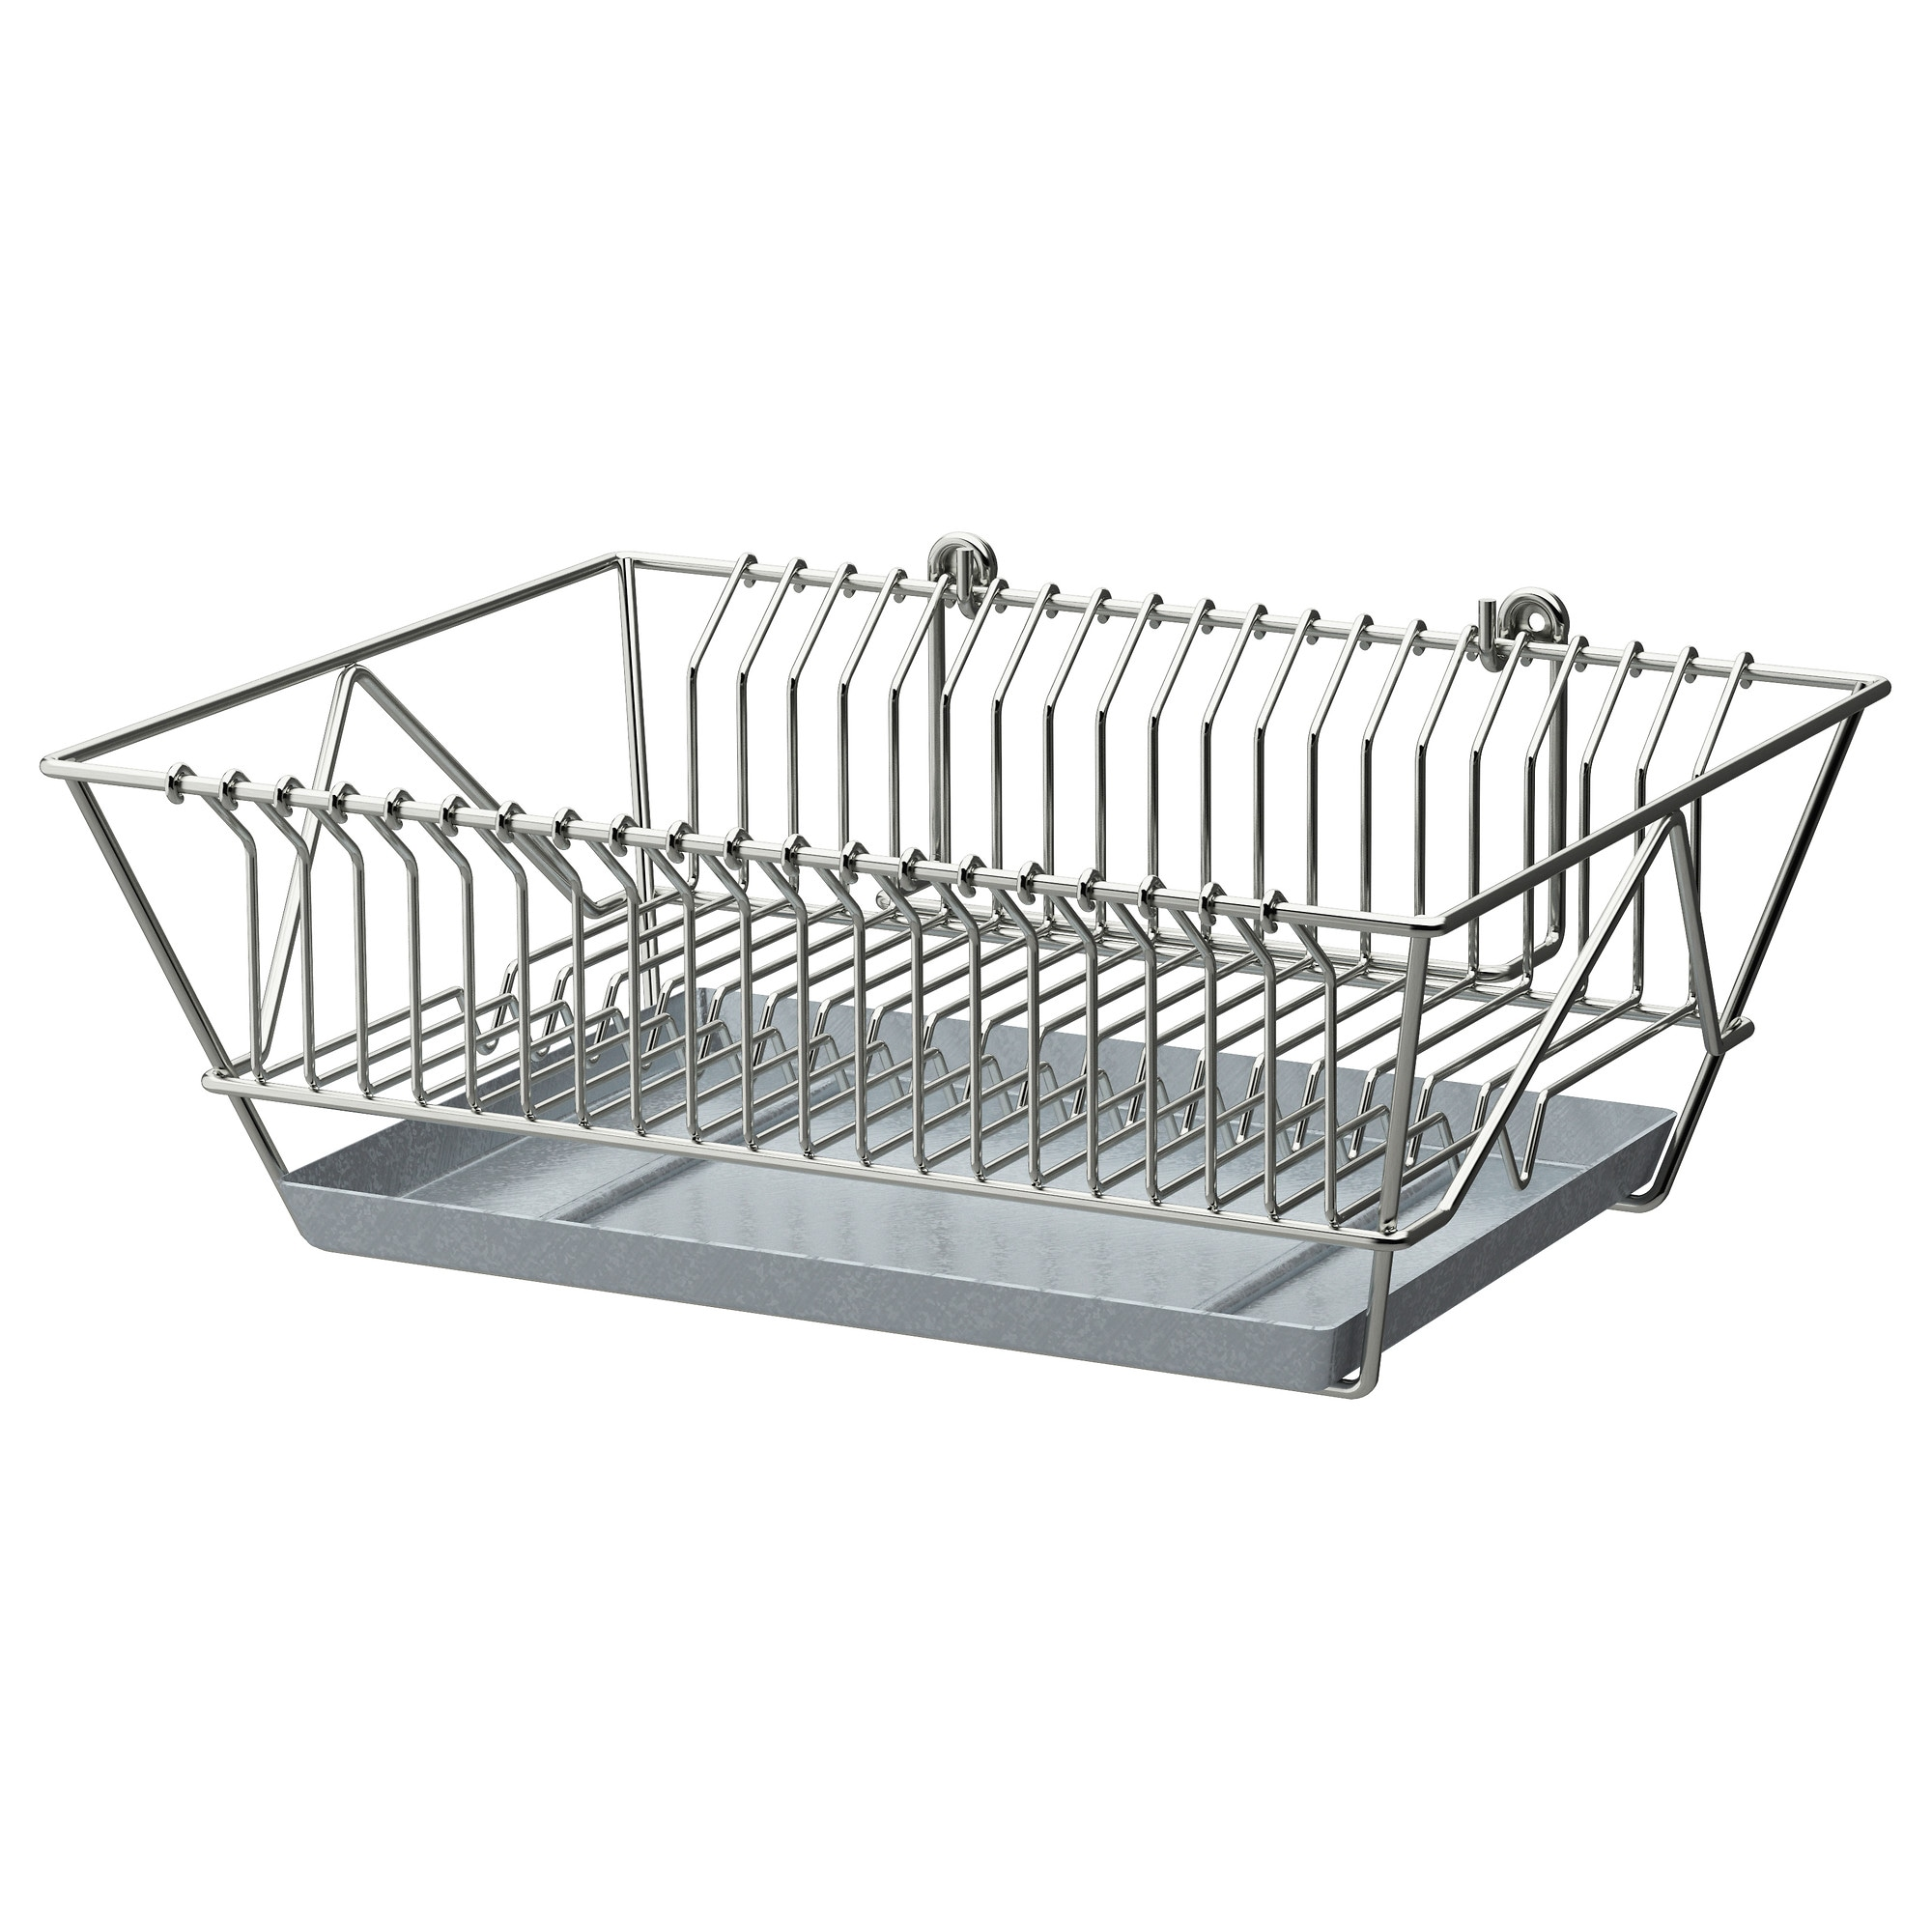 Wall mounted plate racks for kitchens - Fintorp Dish Drainer Nickel Plated Width 14 Depth 11